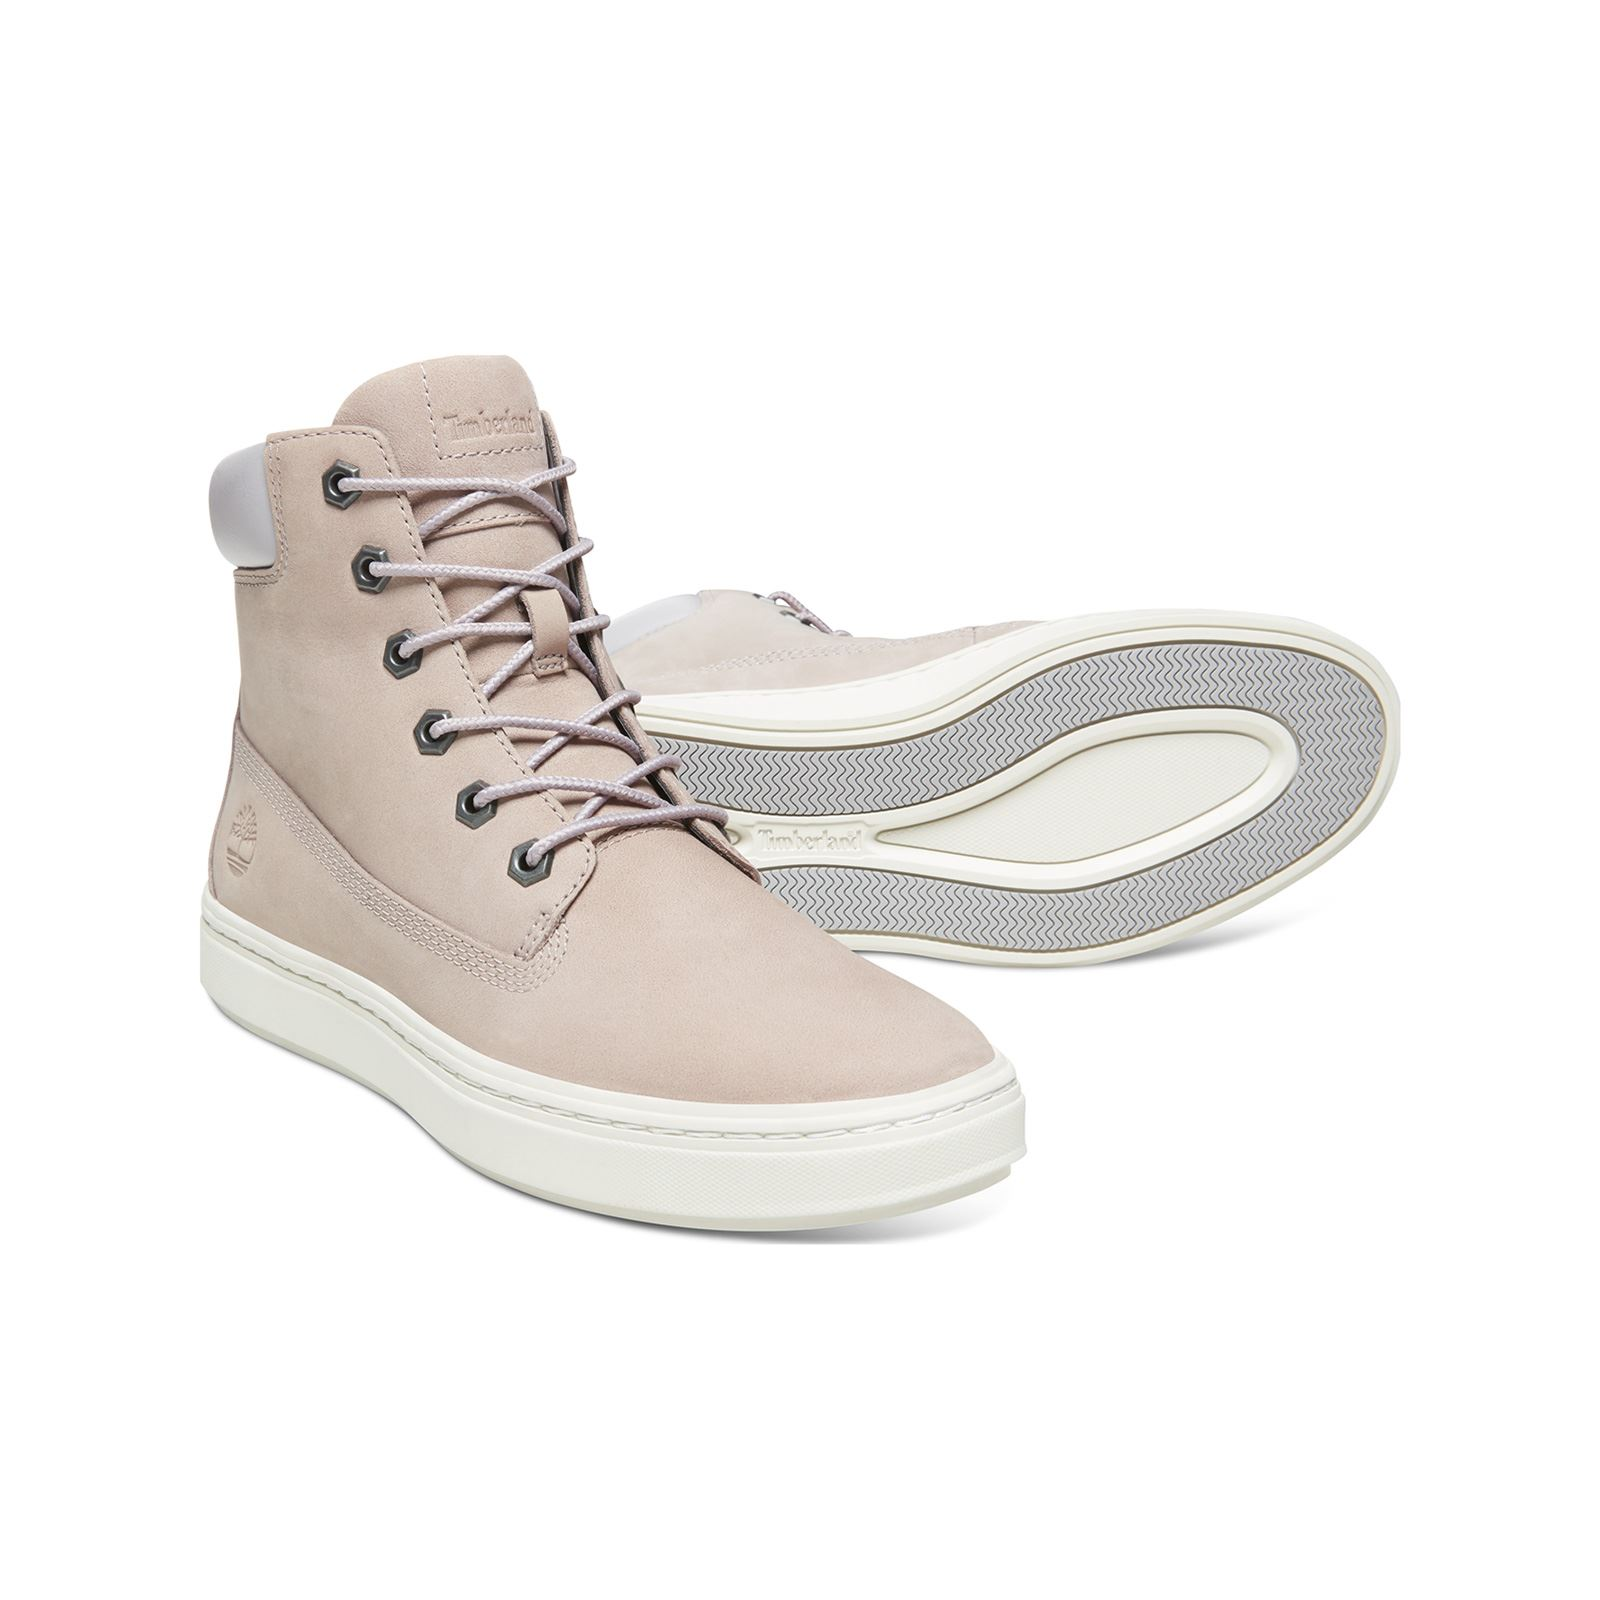 Clair Londyn Cuir Montantes Rose Baskets Timberland Inch 6 En UzMVSpqG